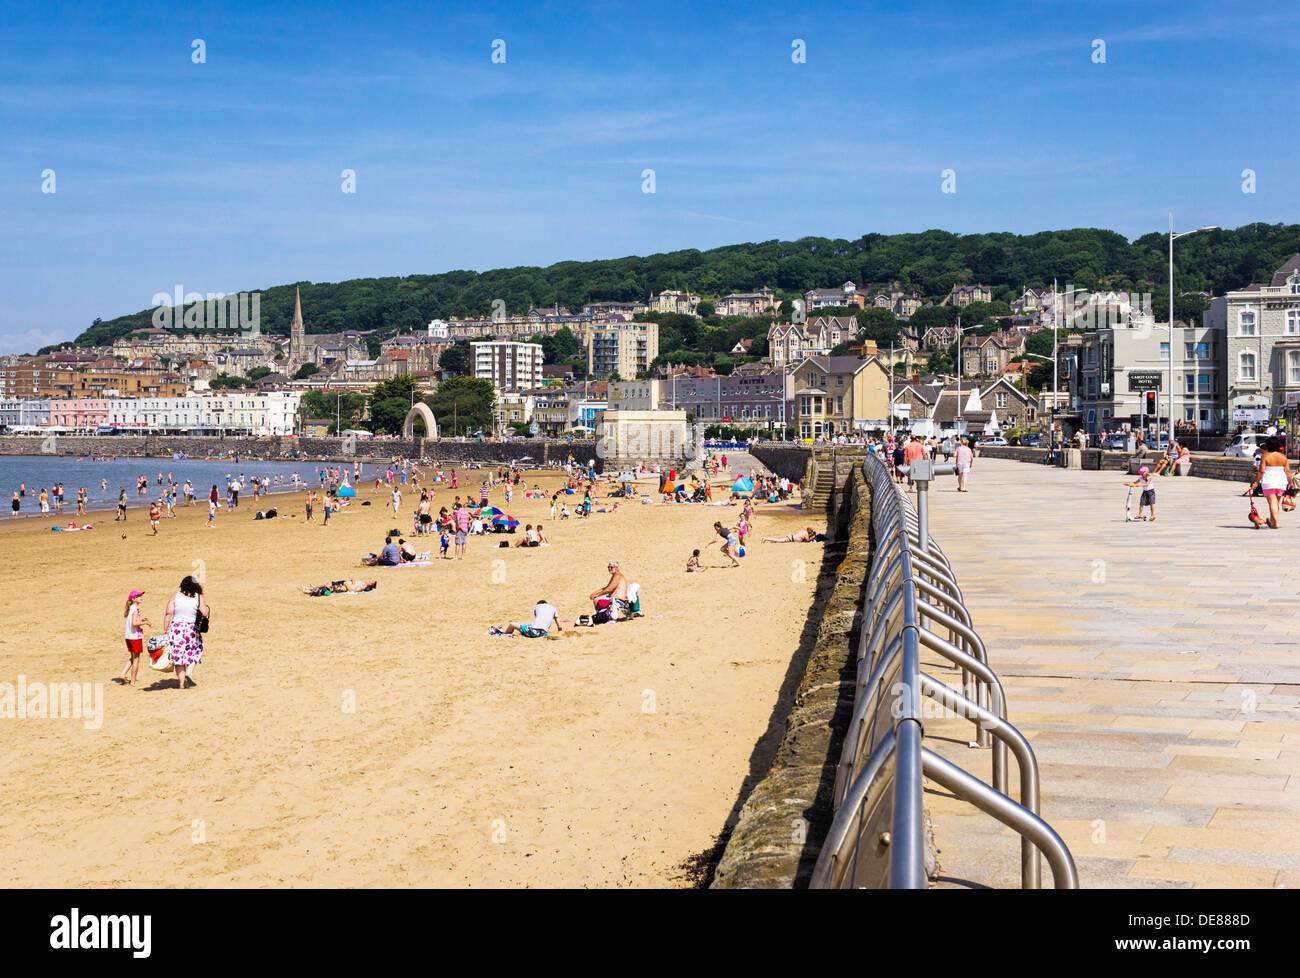 Weston-Super-Mare beach and promenade in summer, Somerset, UK - Stock Image